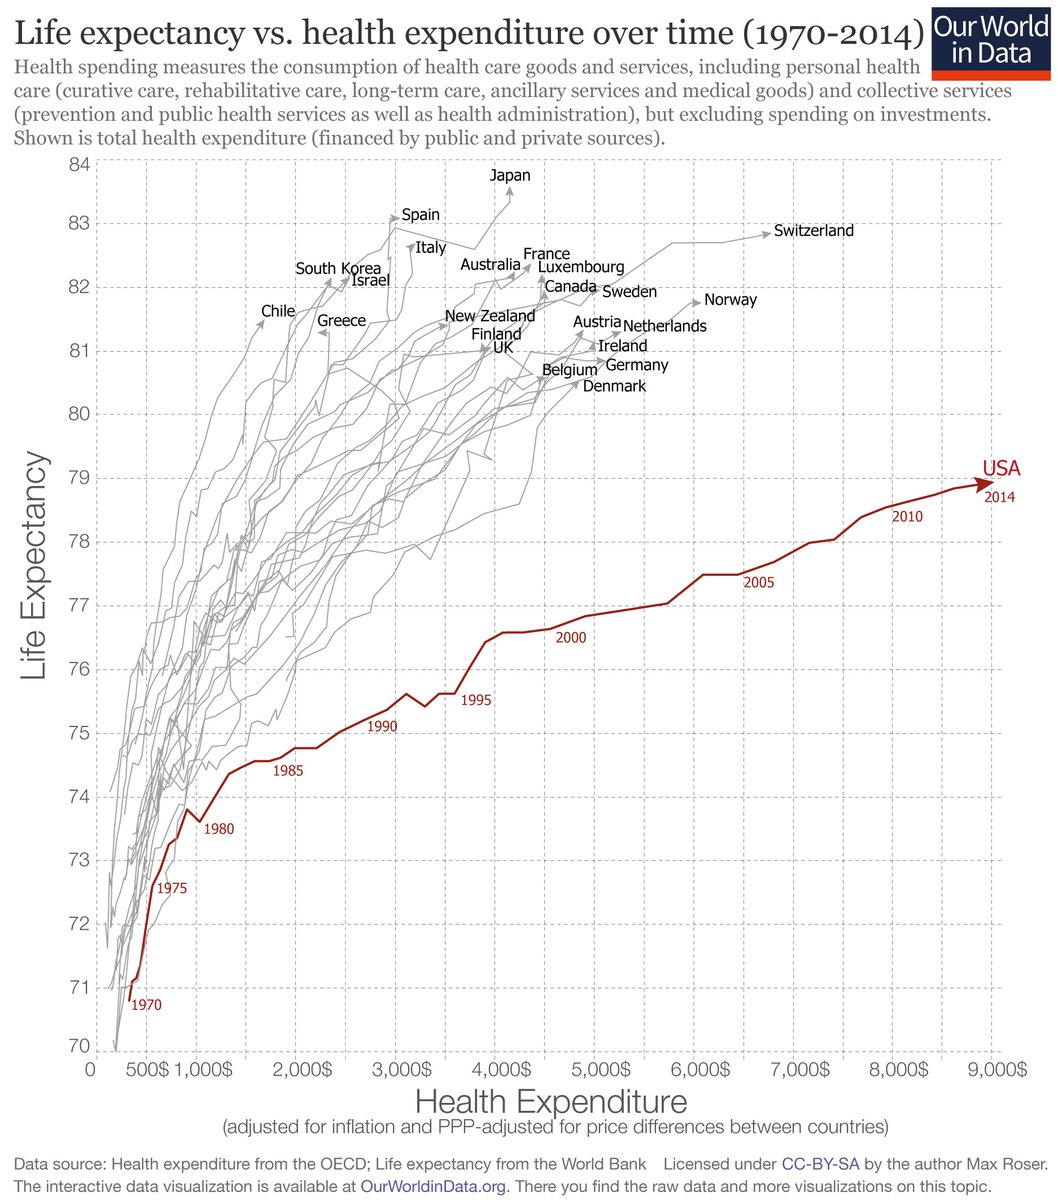 Life expectancy vs health expenditure. The US is a startling outlier, and not in a good way. https://t.co/CGsuoA61s9